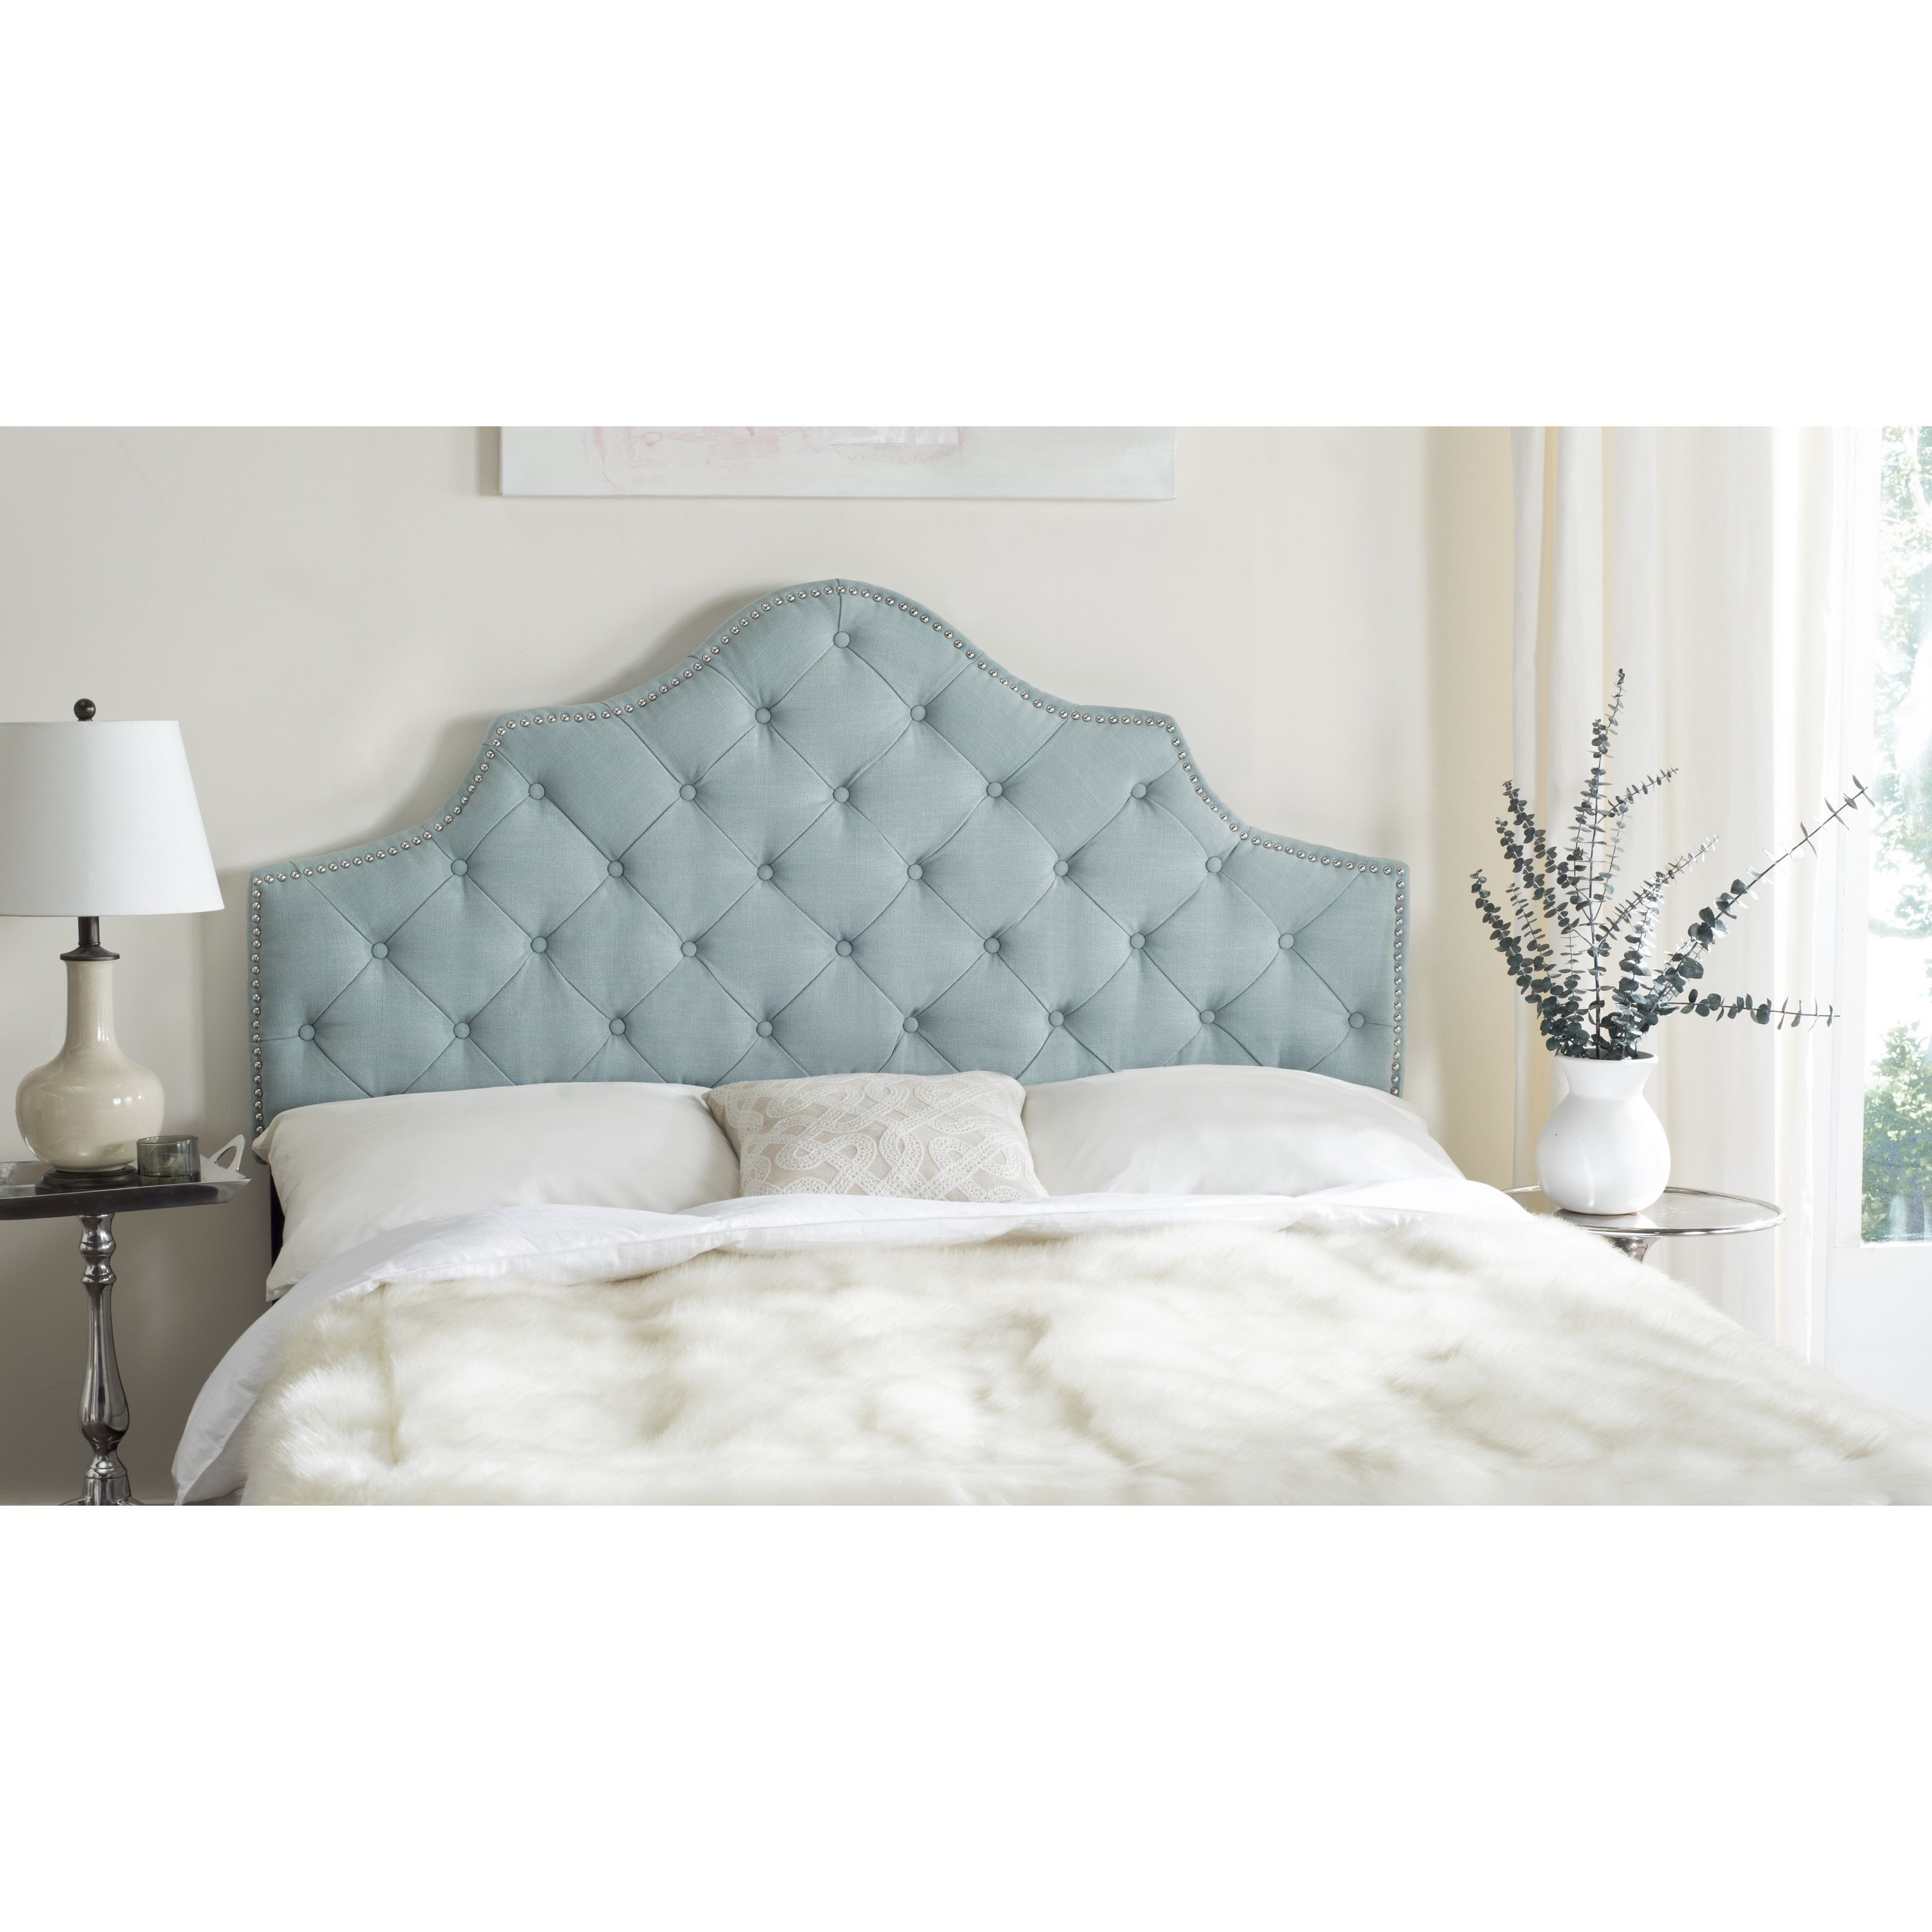 images board black marvellous boards fabric footboard wood shutter white headboard upholstered headboards tufted velvet heads leather hd metal nice king ideas best queen grey good beds gray twin amazing wallpaper sale full padded of size head tall and